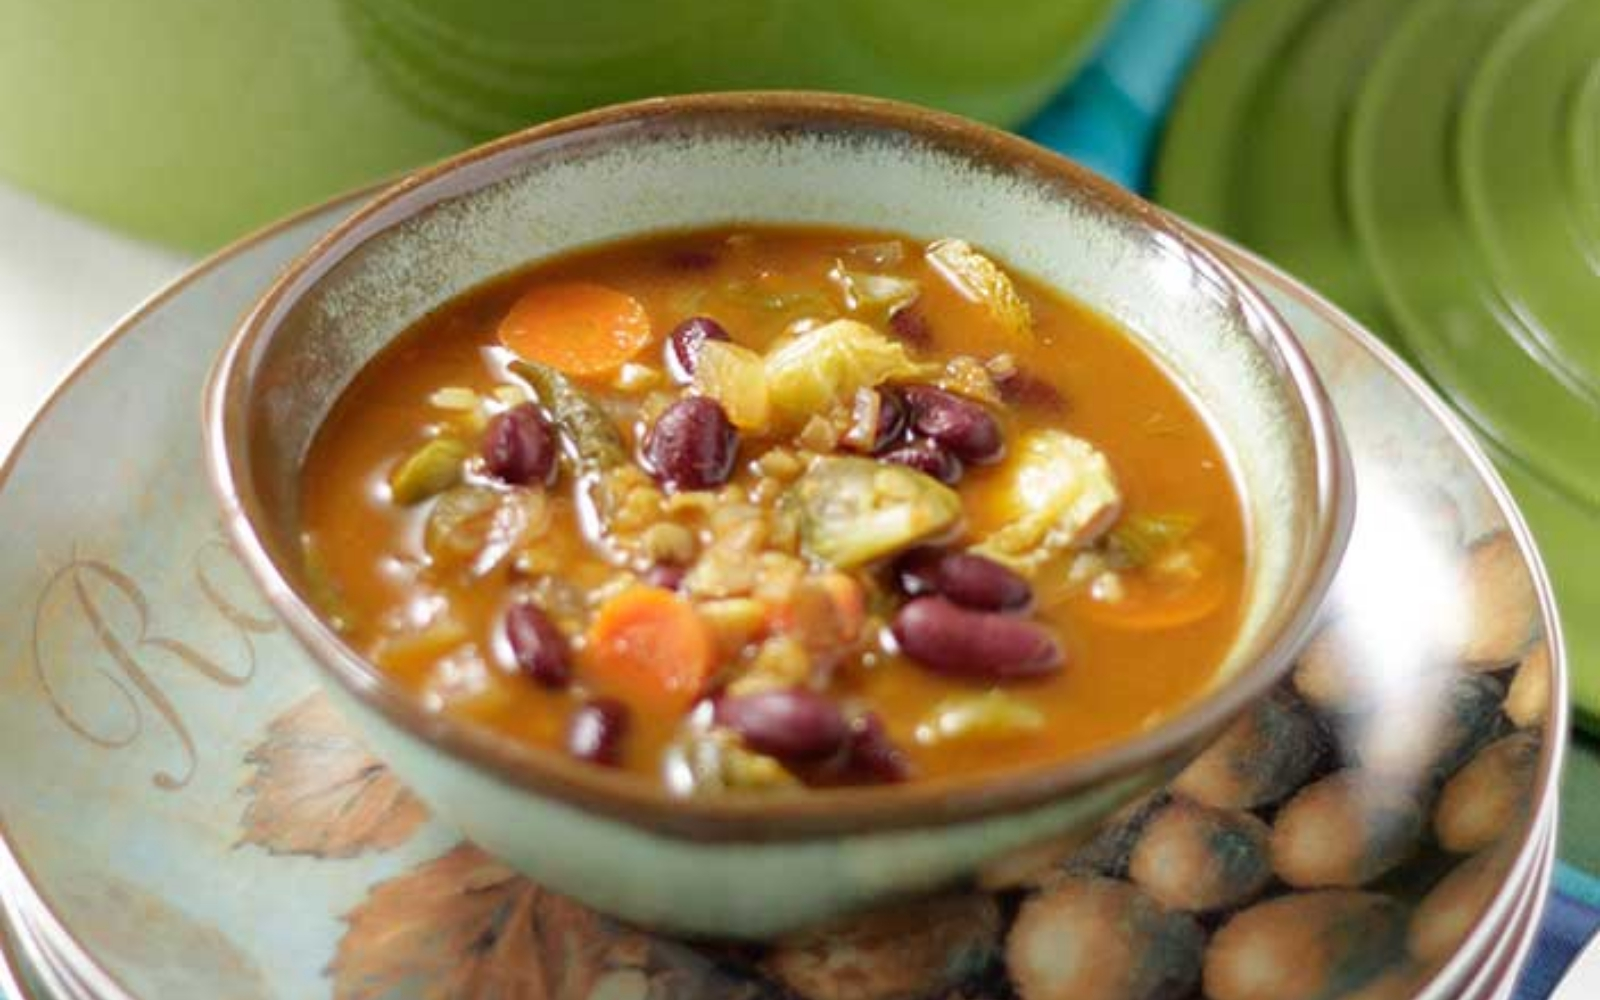 Vegan Guten-Free Tomato, Carrot, Brussels Sprouts Soup